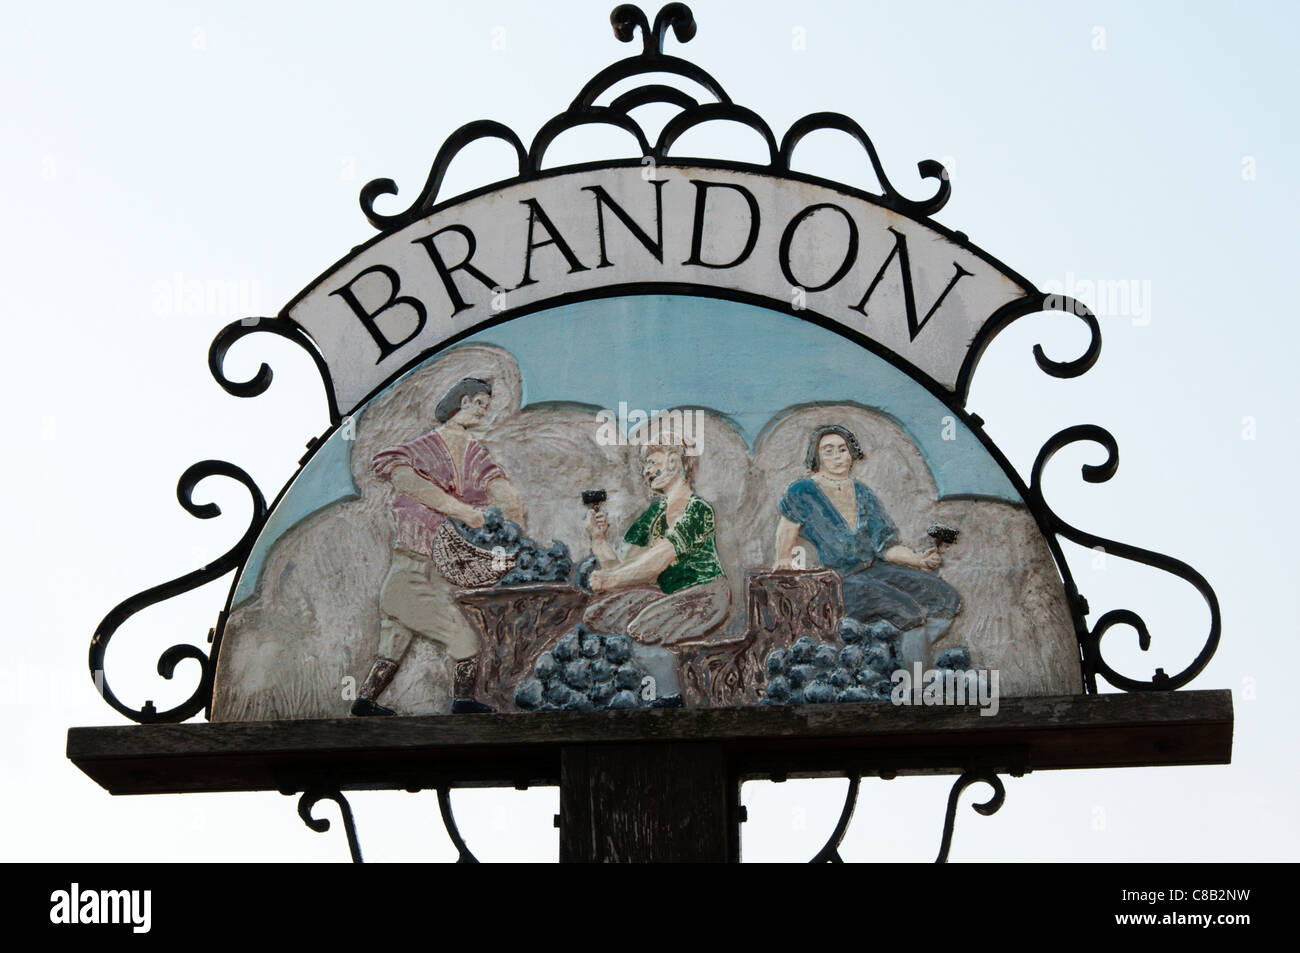 The town sign for Brandon shows flint knappers at work - at one time a local industry. - Stock Image